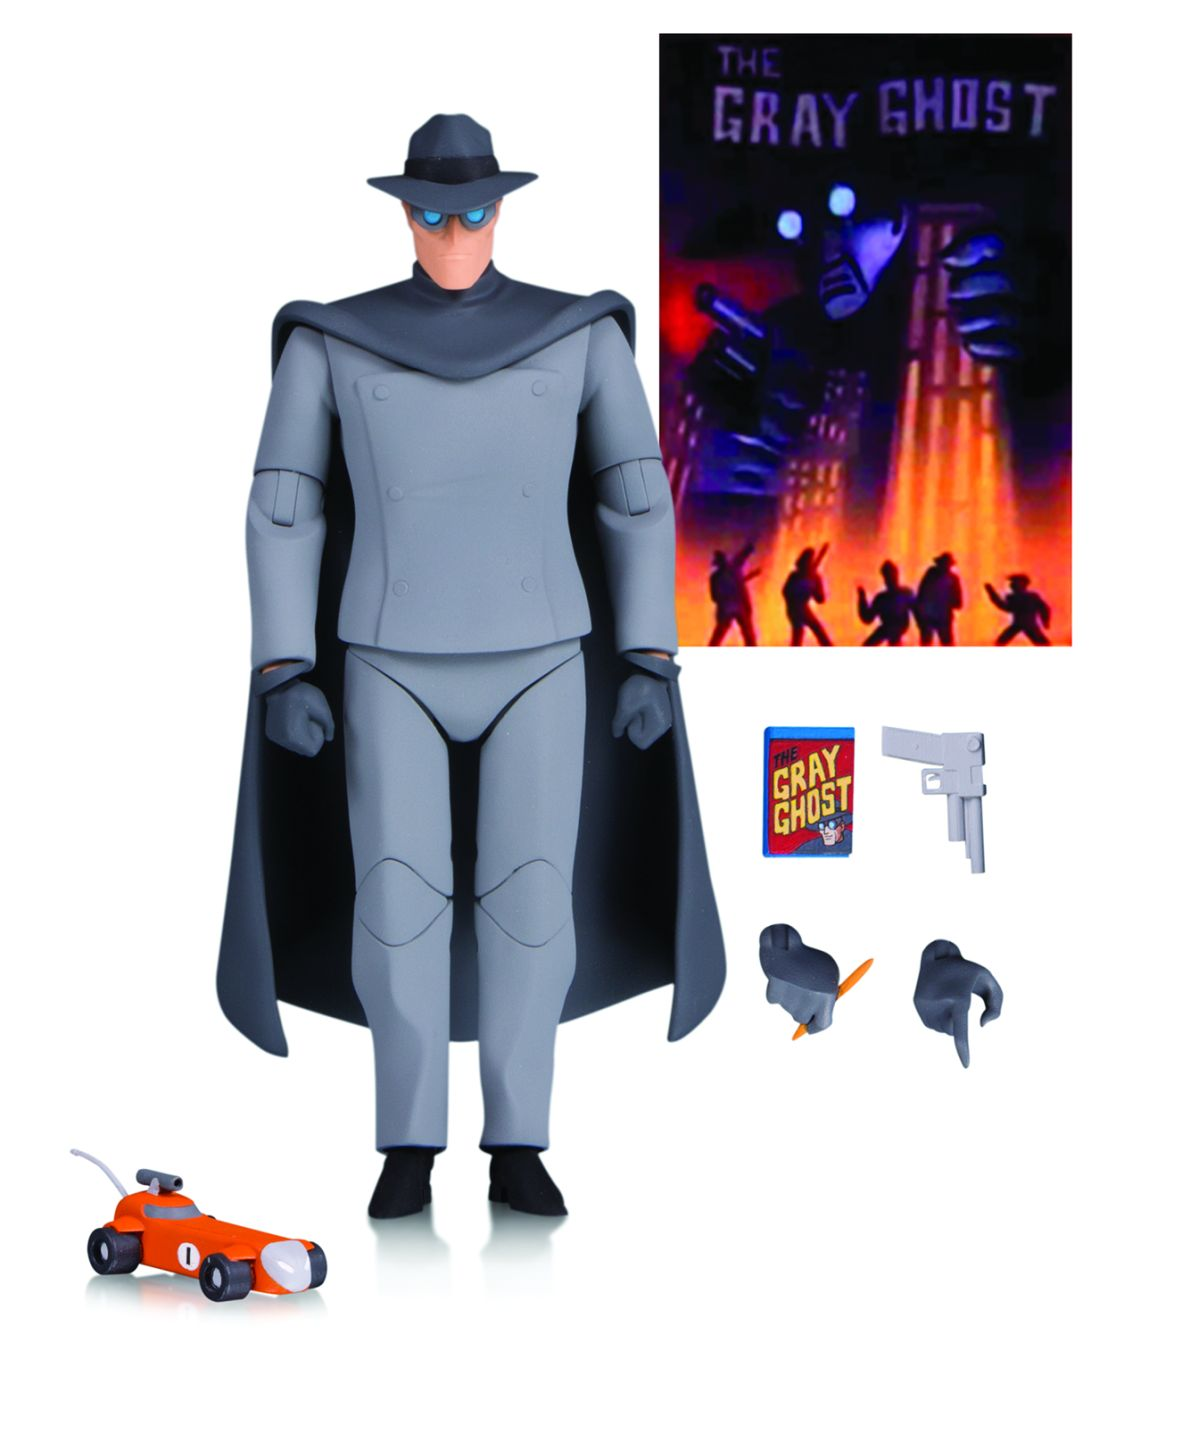 BATMAN: THE ANIMATED SERIES GRAY GHOST ACTION FIGURE